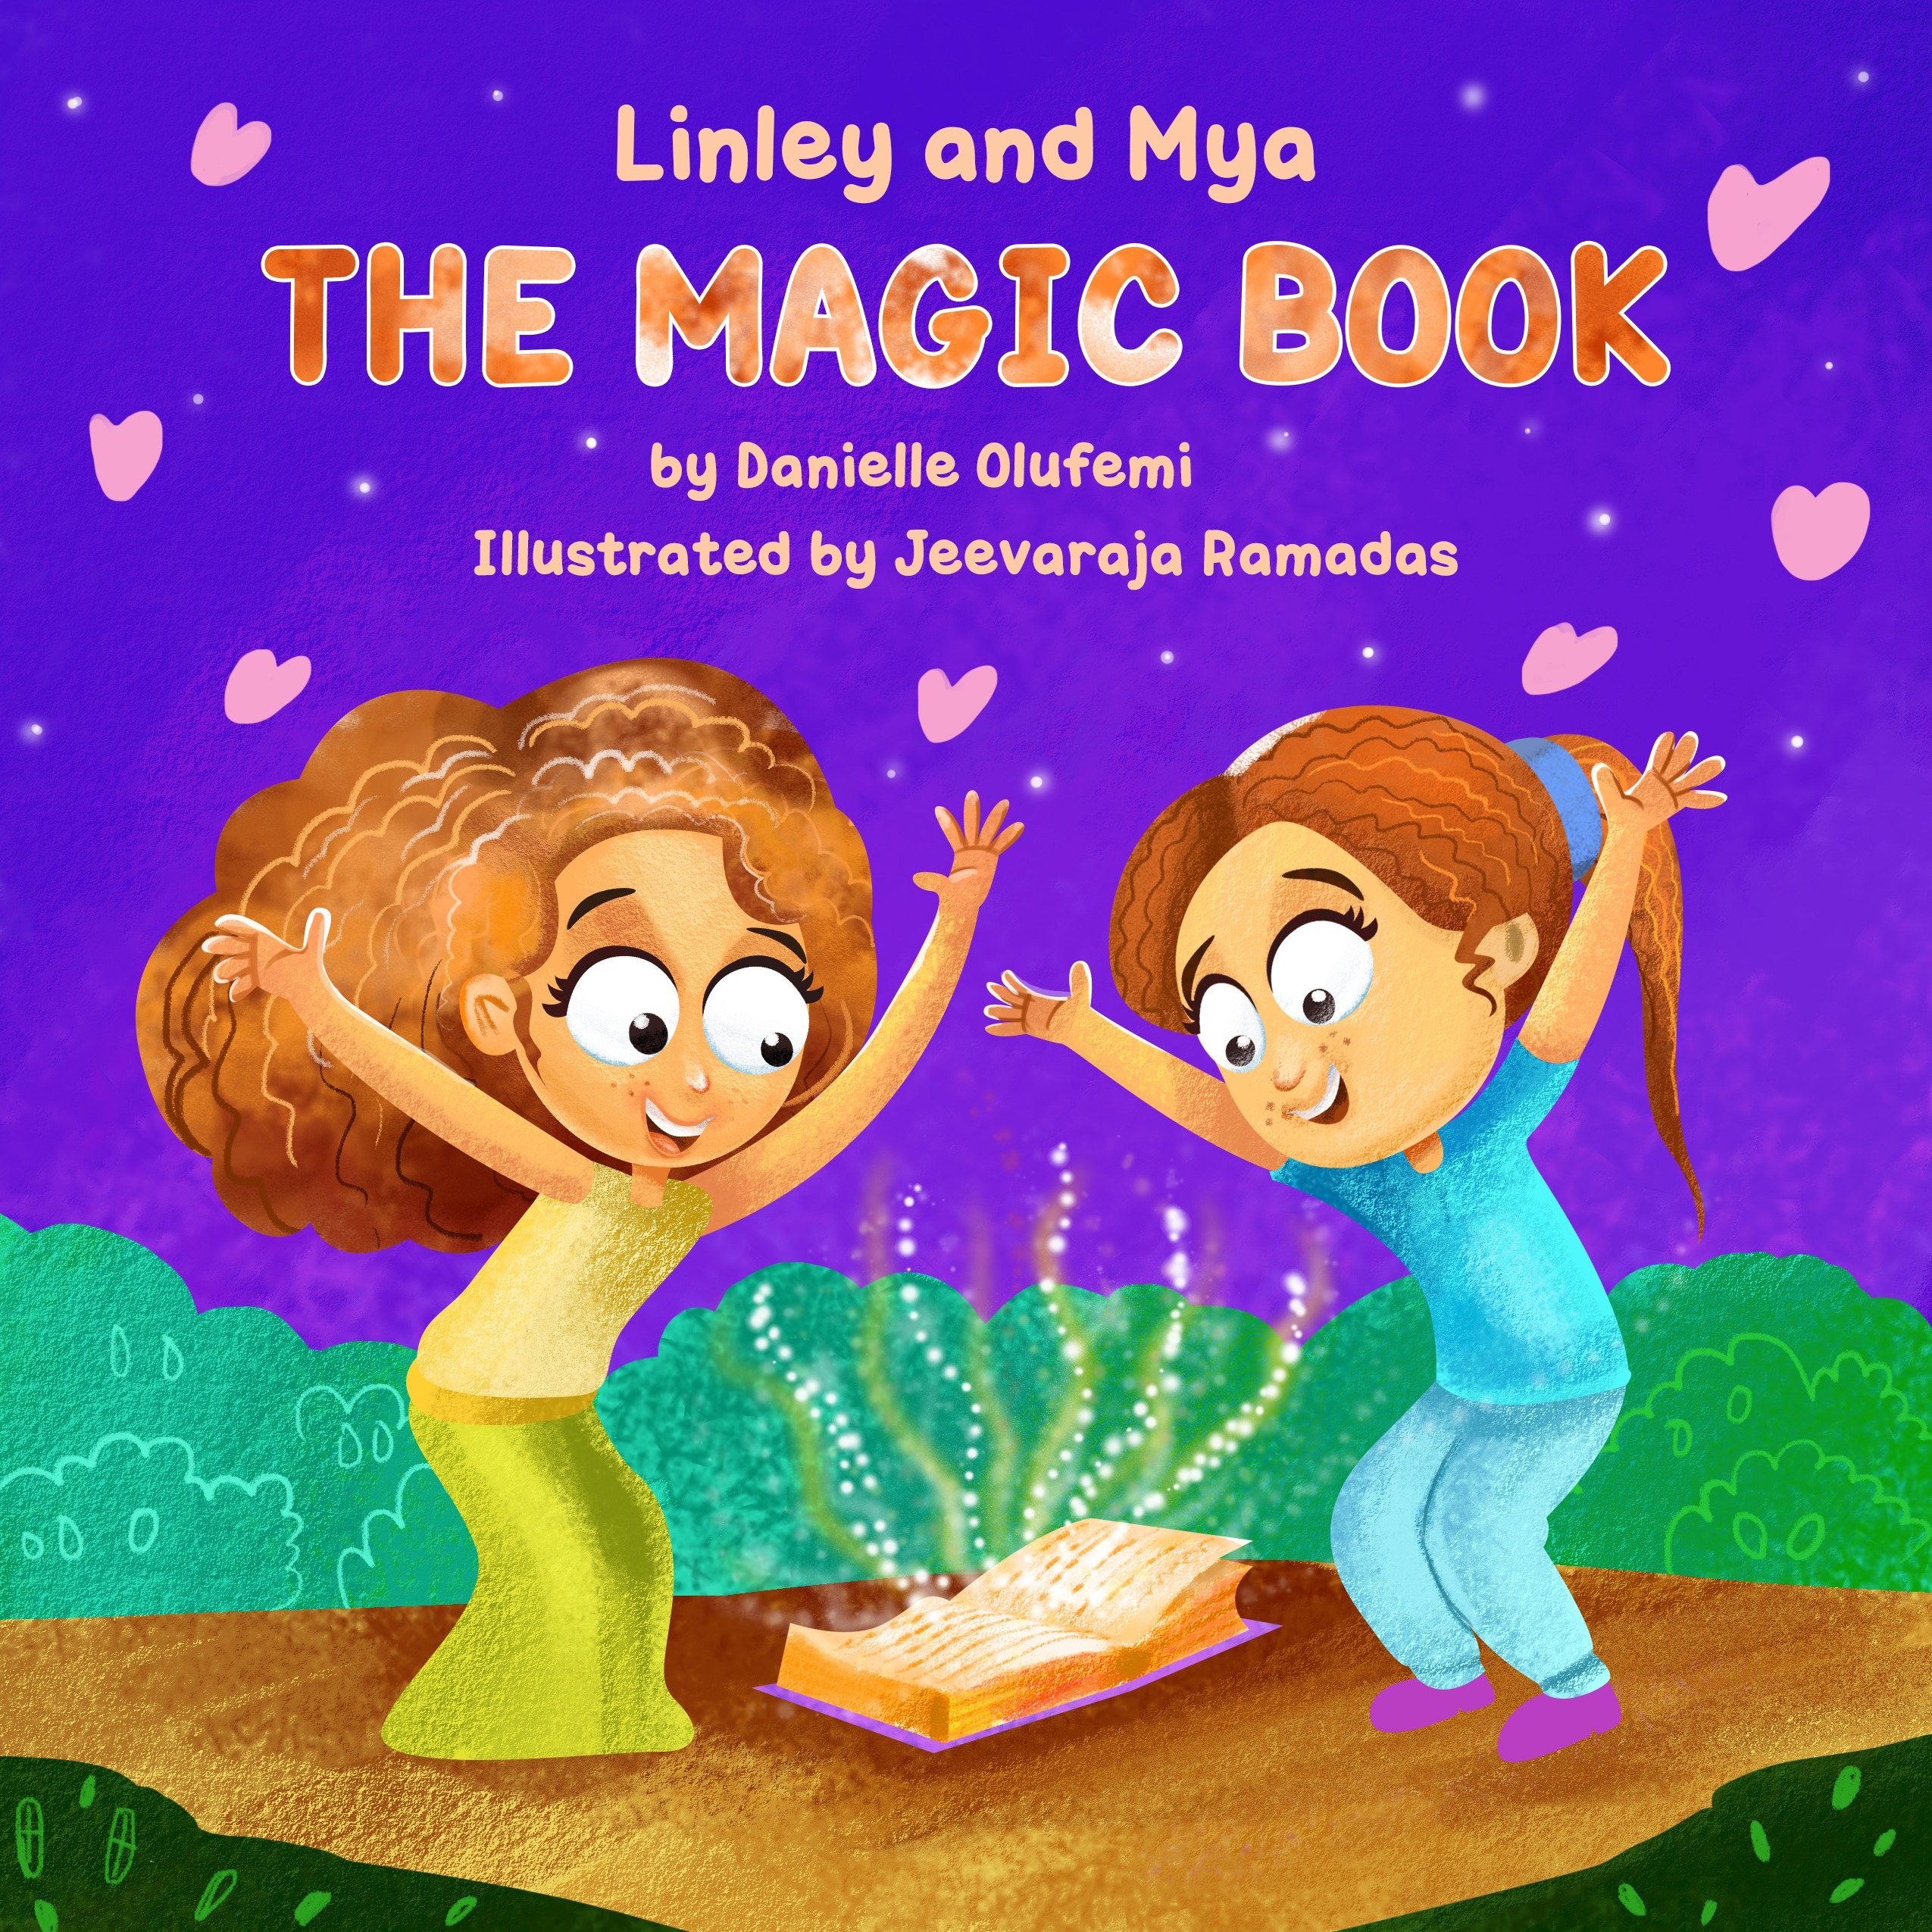 Linley and Mya - The Magic Book